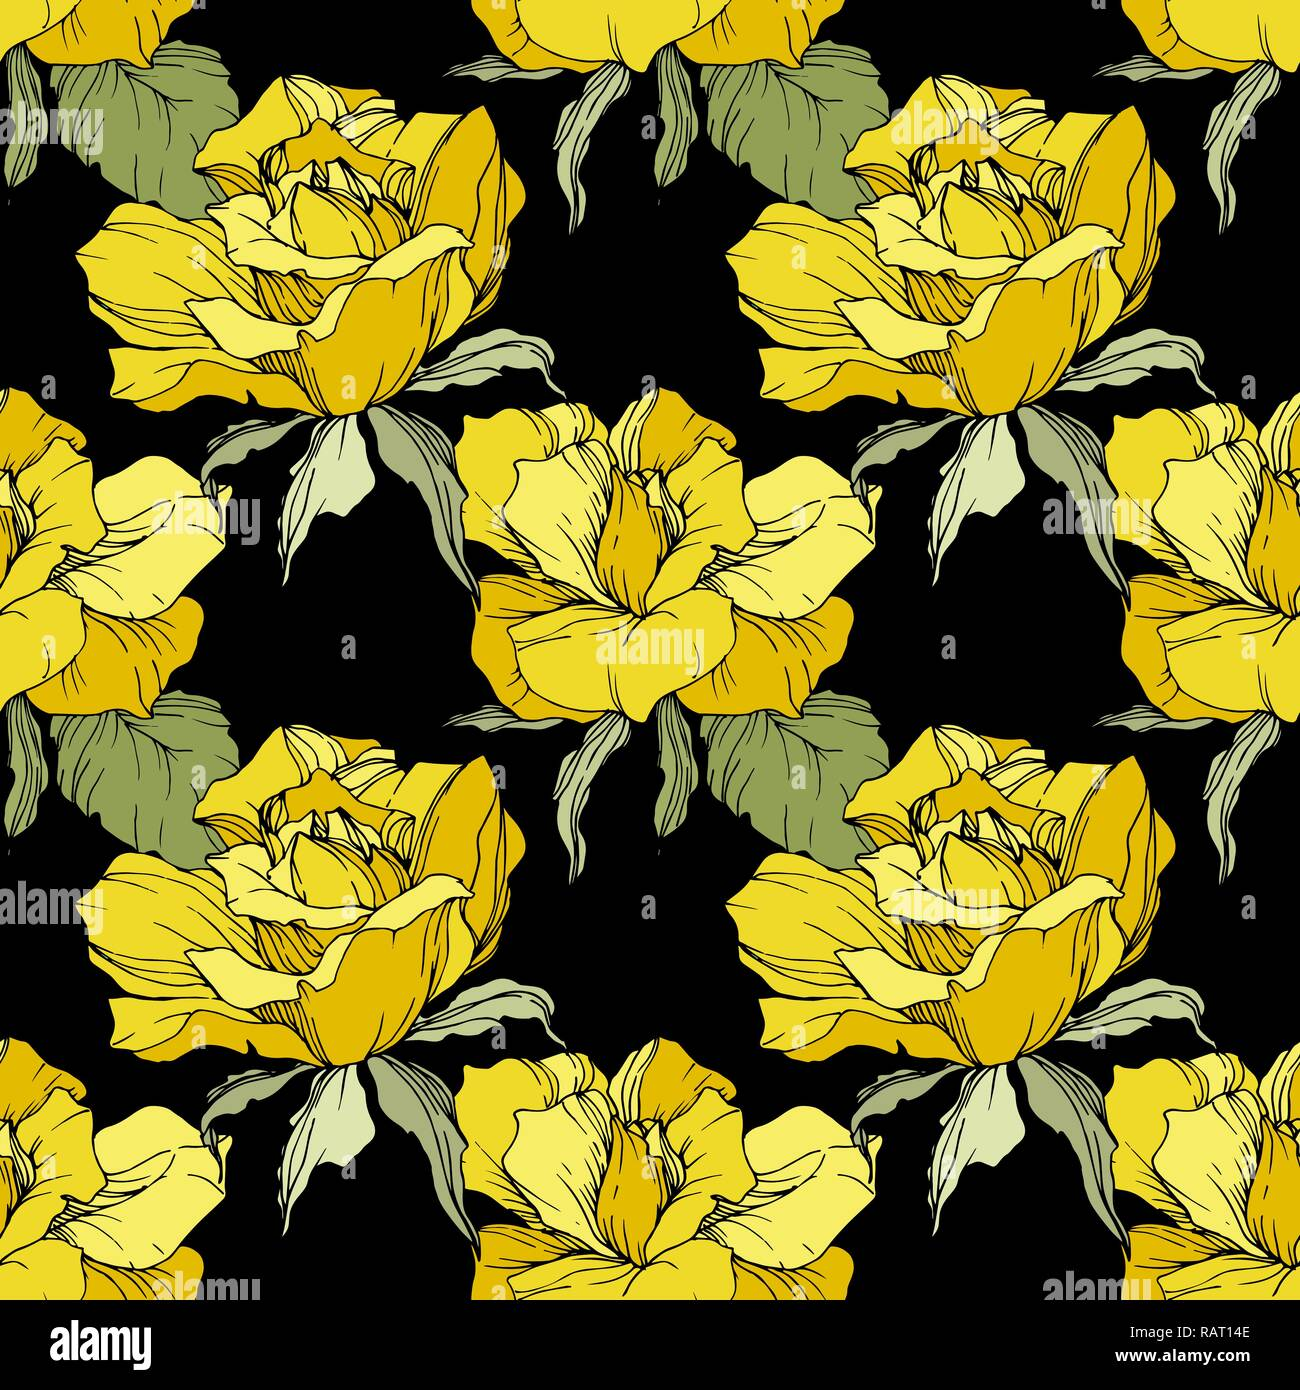 Vector Yellow Rose Floral Botanical Flower Engraved Ink Art Seamless Background Pattern Fabric Wallpaper Print Texture On Black Background Stock Vector Image Art Alamy